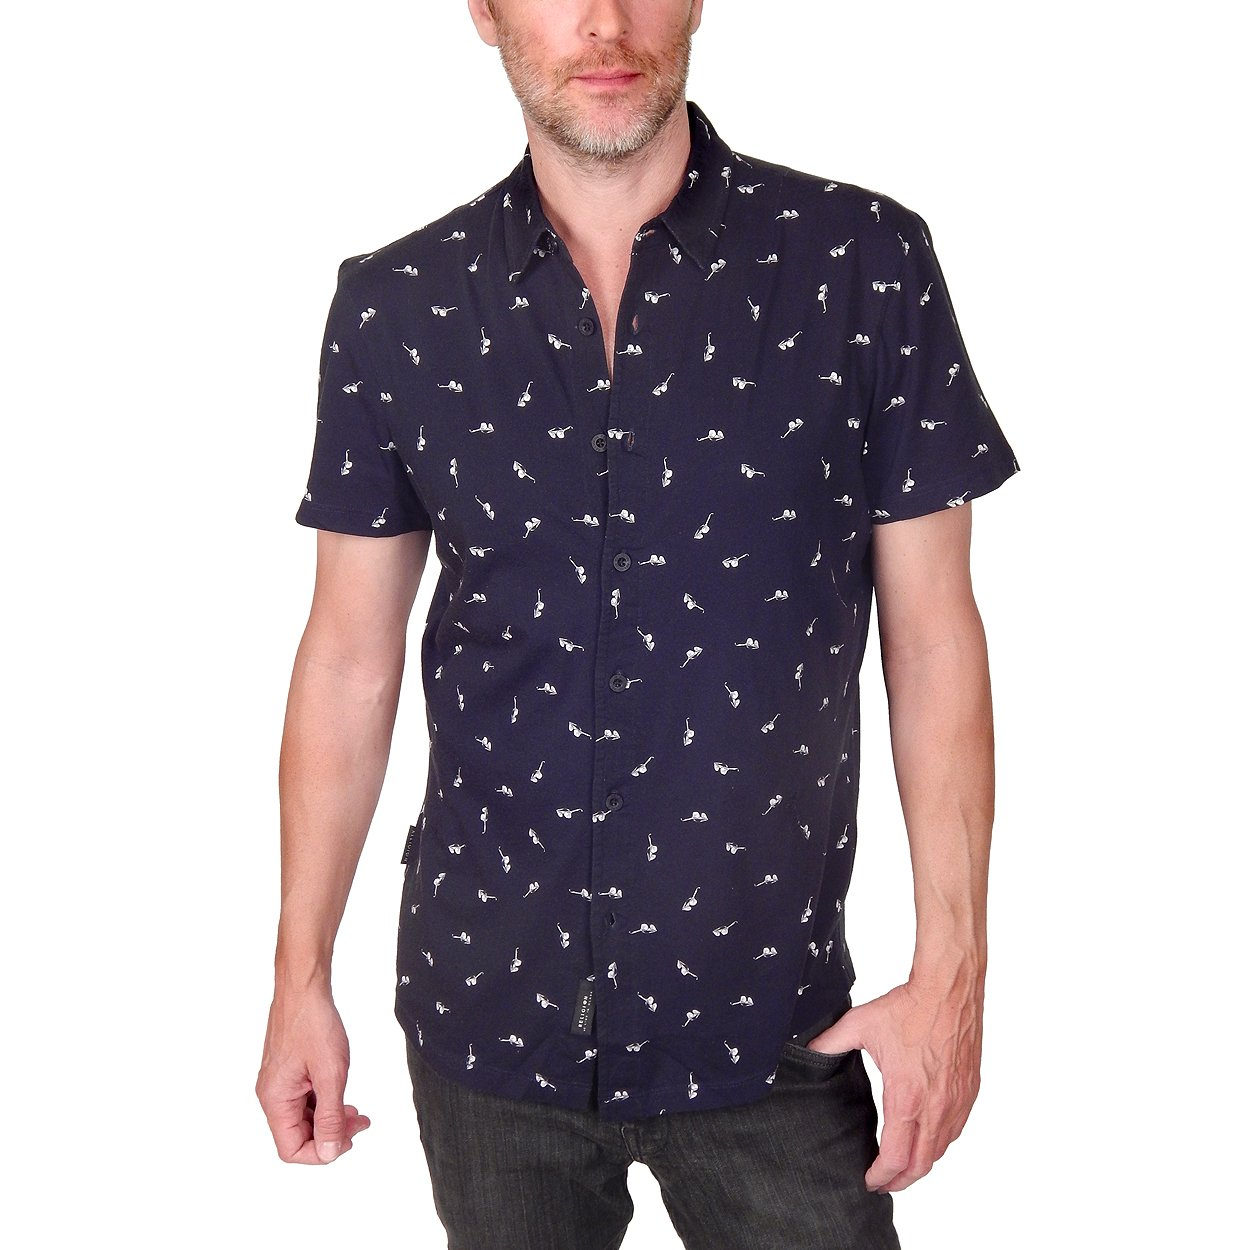 RELIGION UK - ''MIX SHADE'' Sunglasses Print Shirt in Black (Small) by Religion London